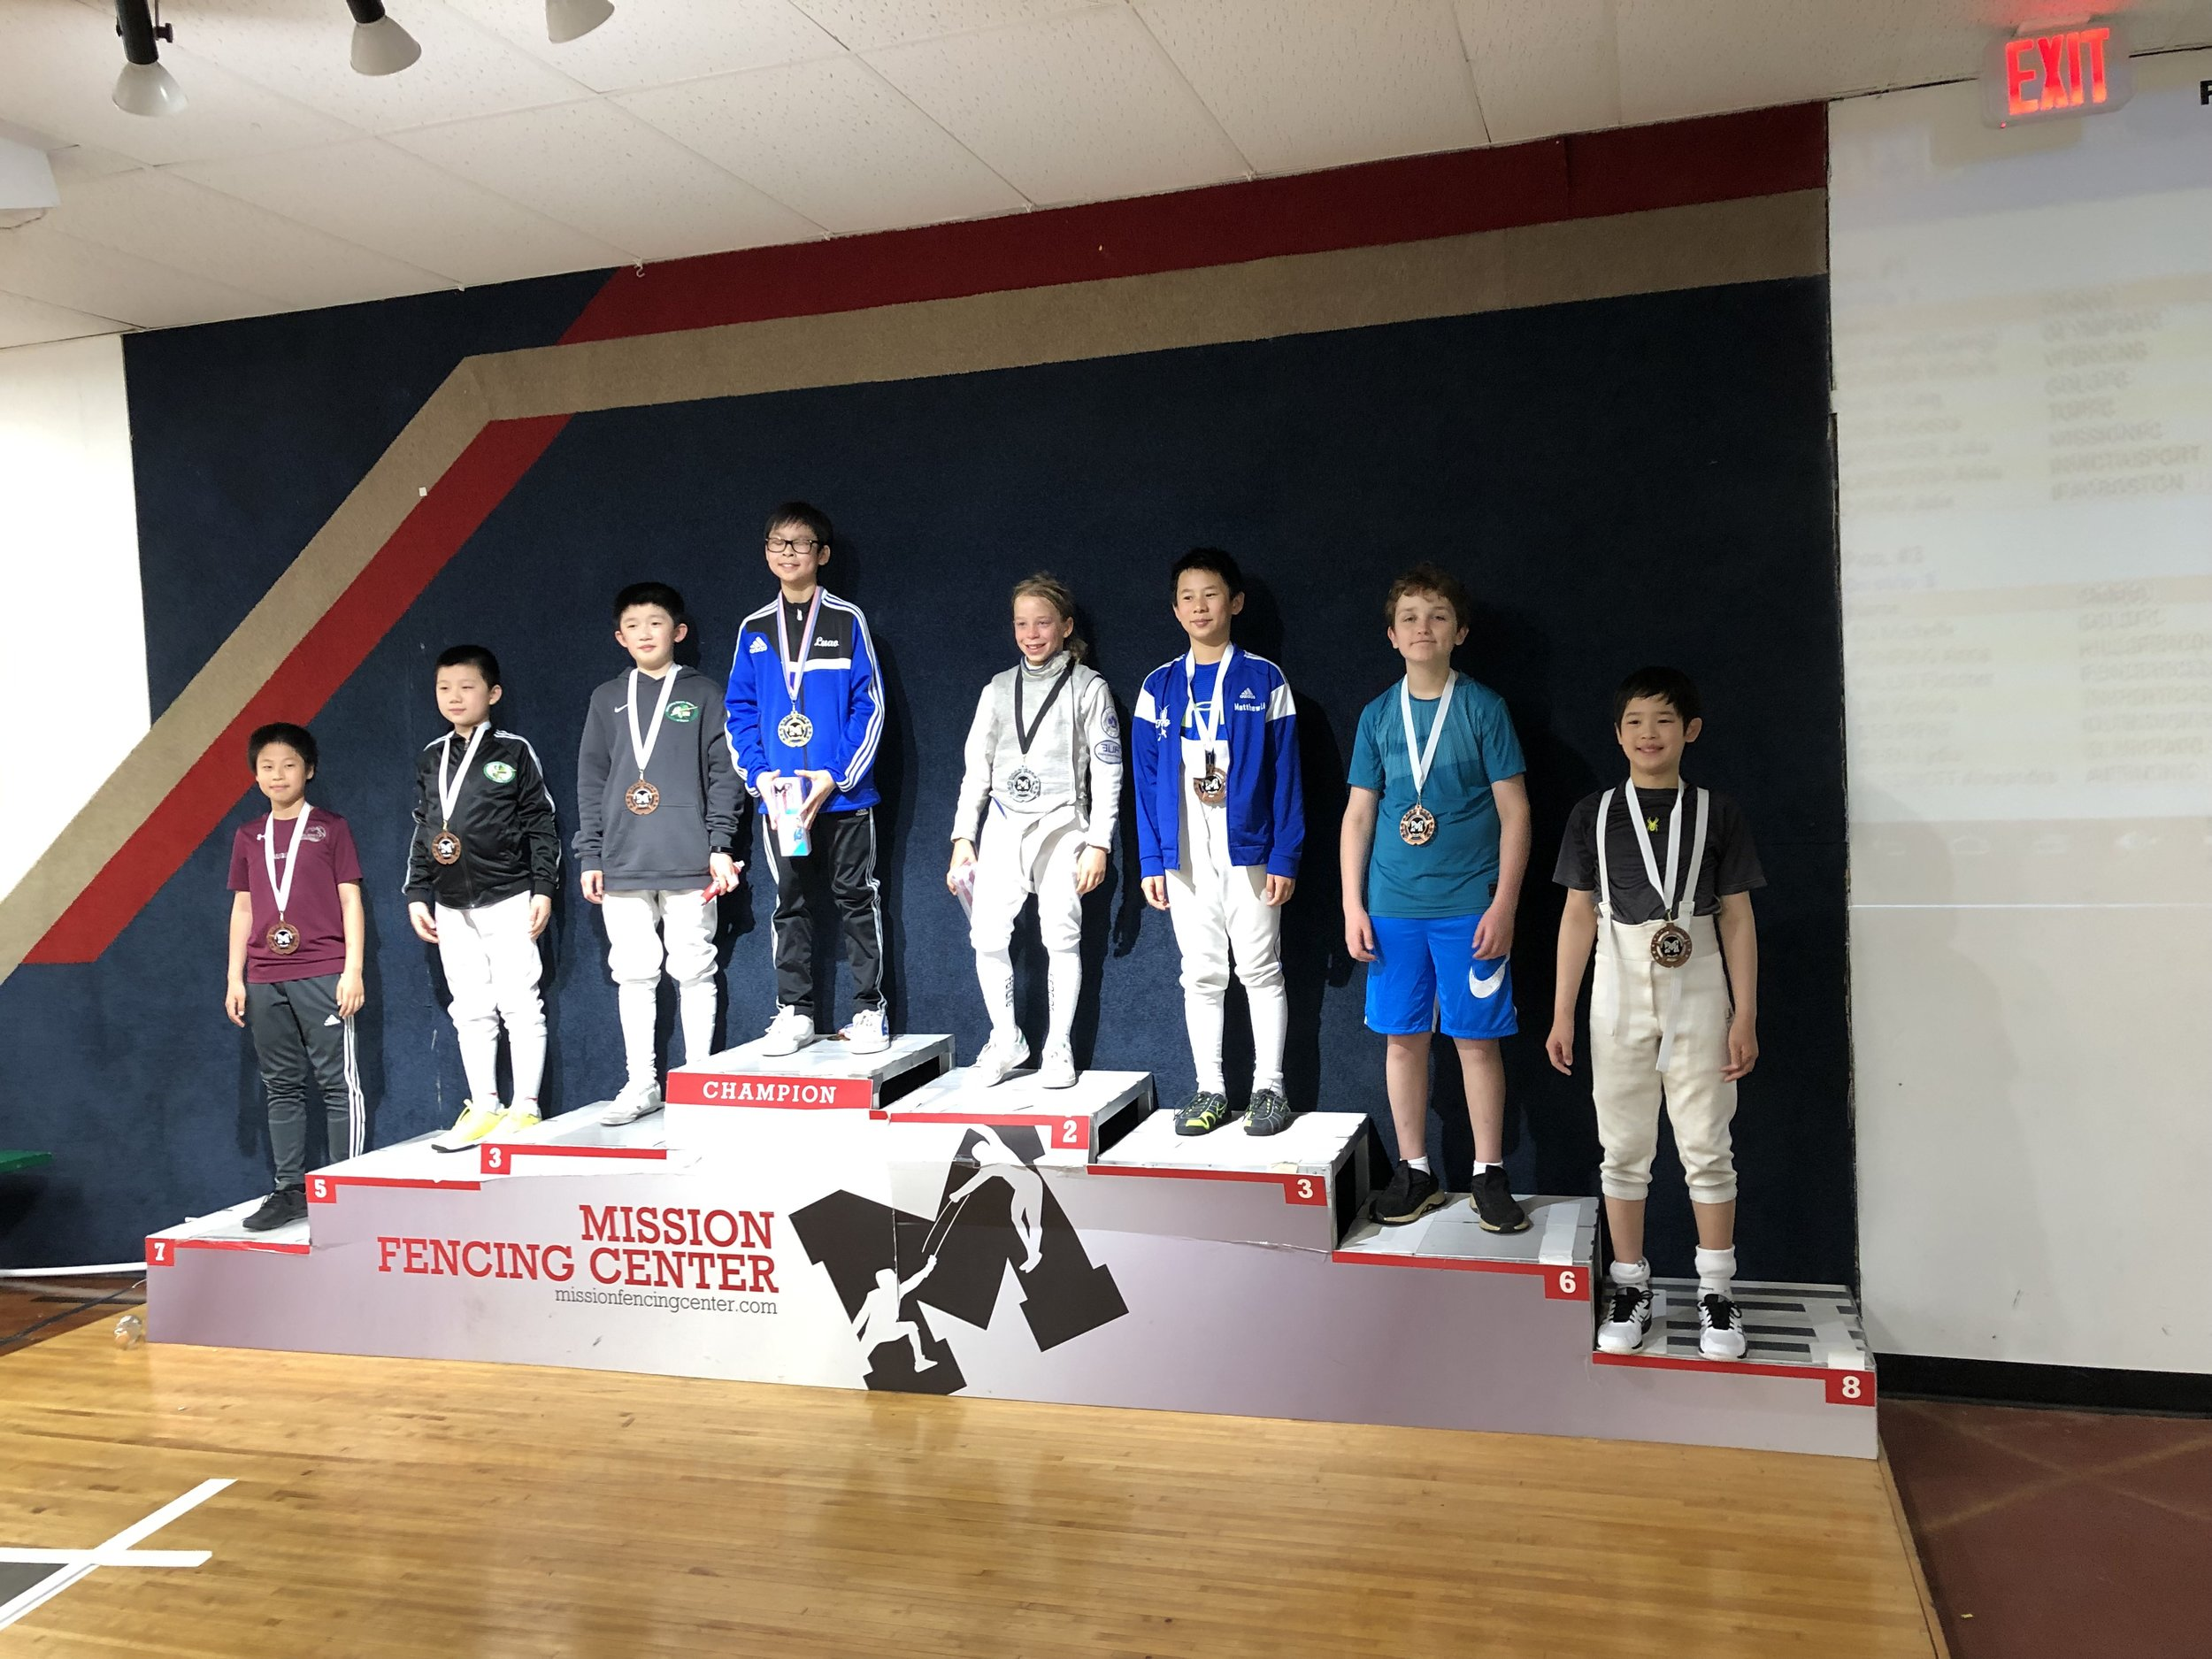 Pictured: Dylan Arouh wins a Top-8 Medal in Y-10 Men's Foil